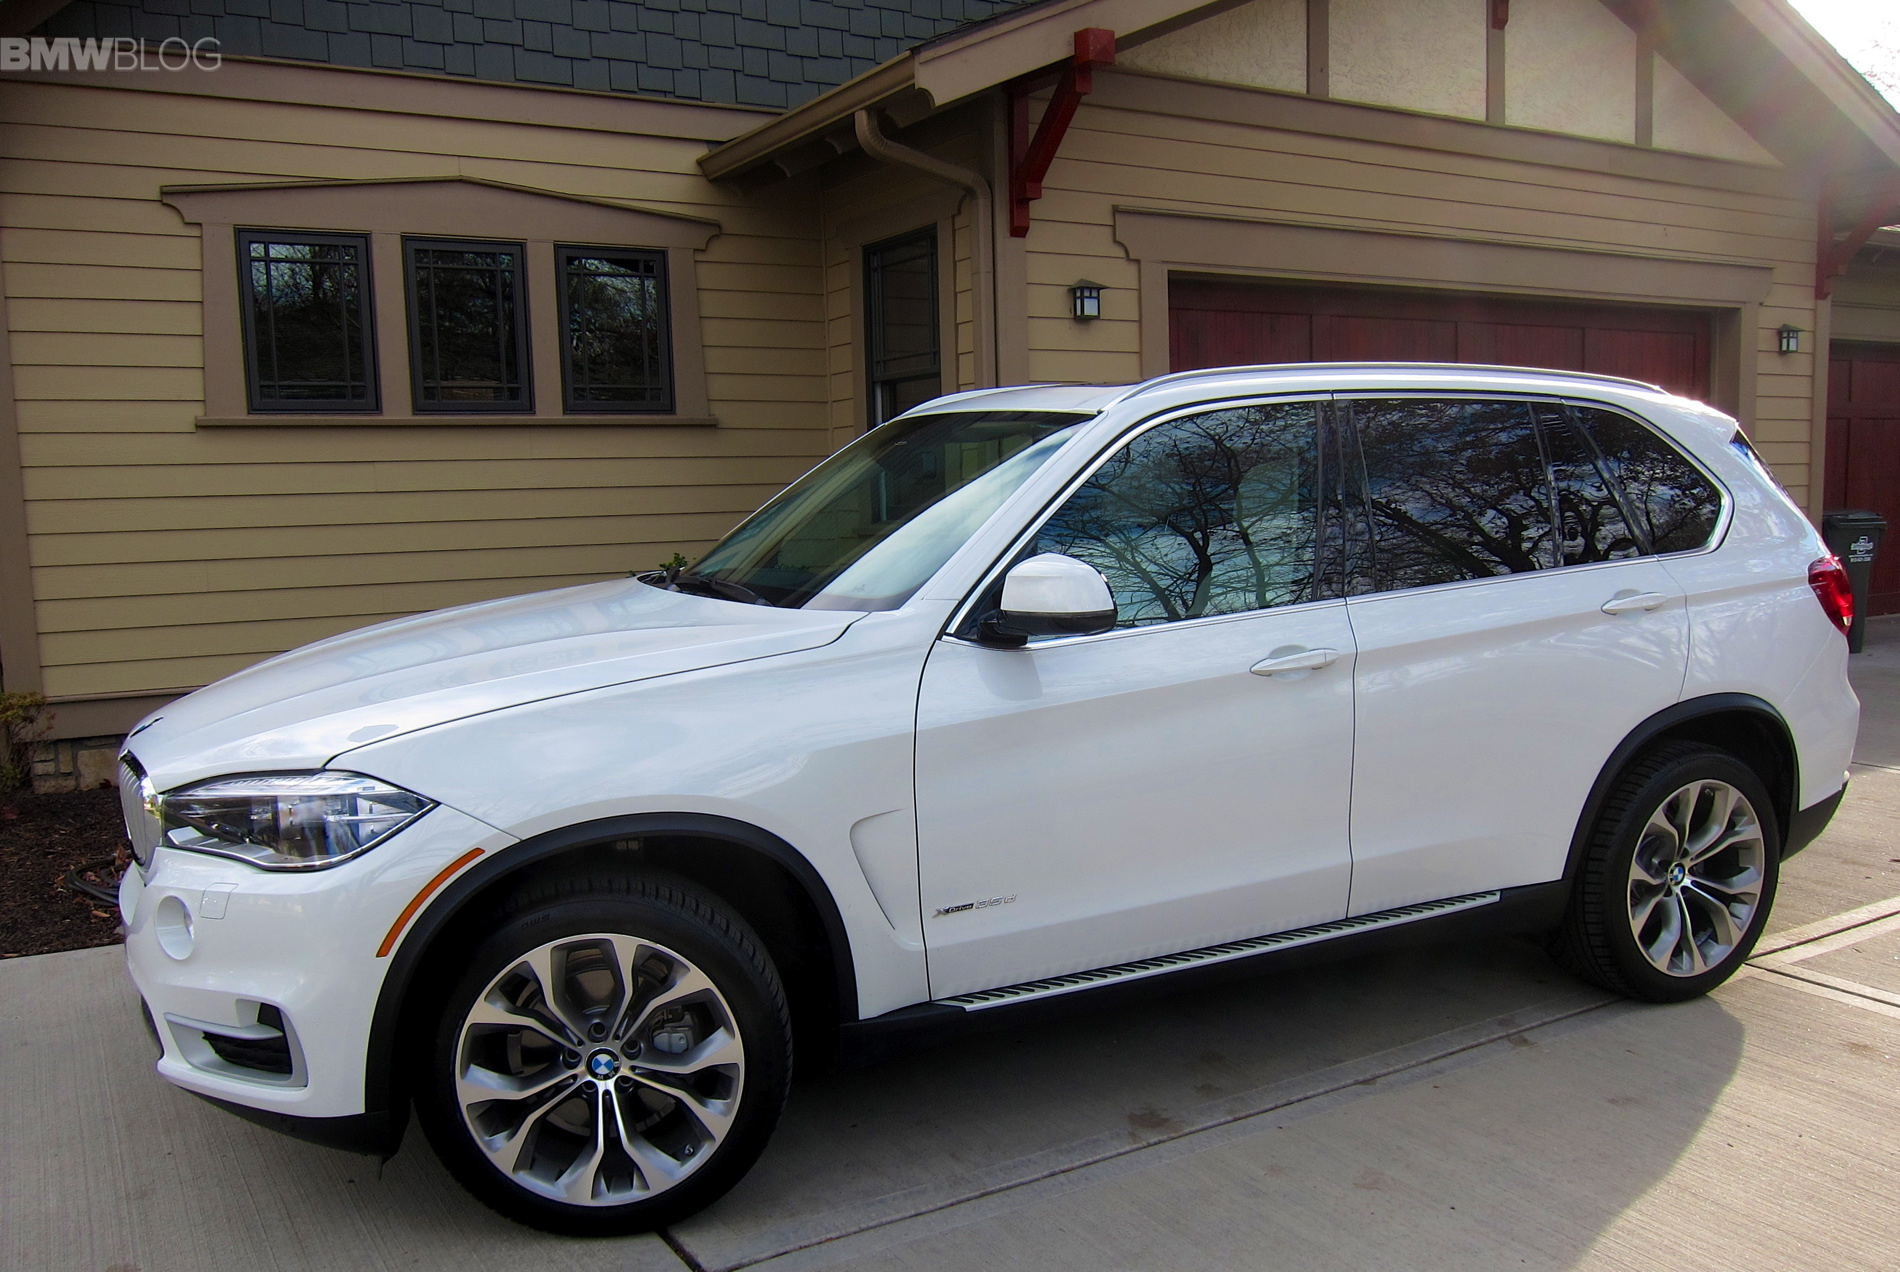 2016 Bmw X5 Xdrive35d Undergoes Minor Technical Updates Delivers In December 2015